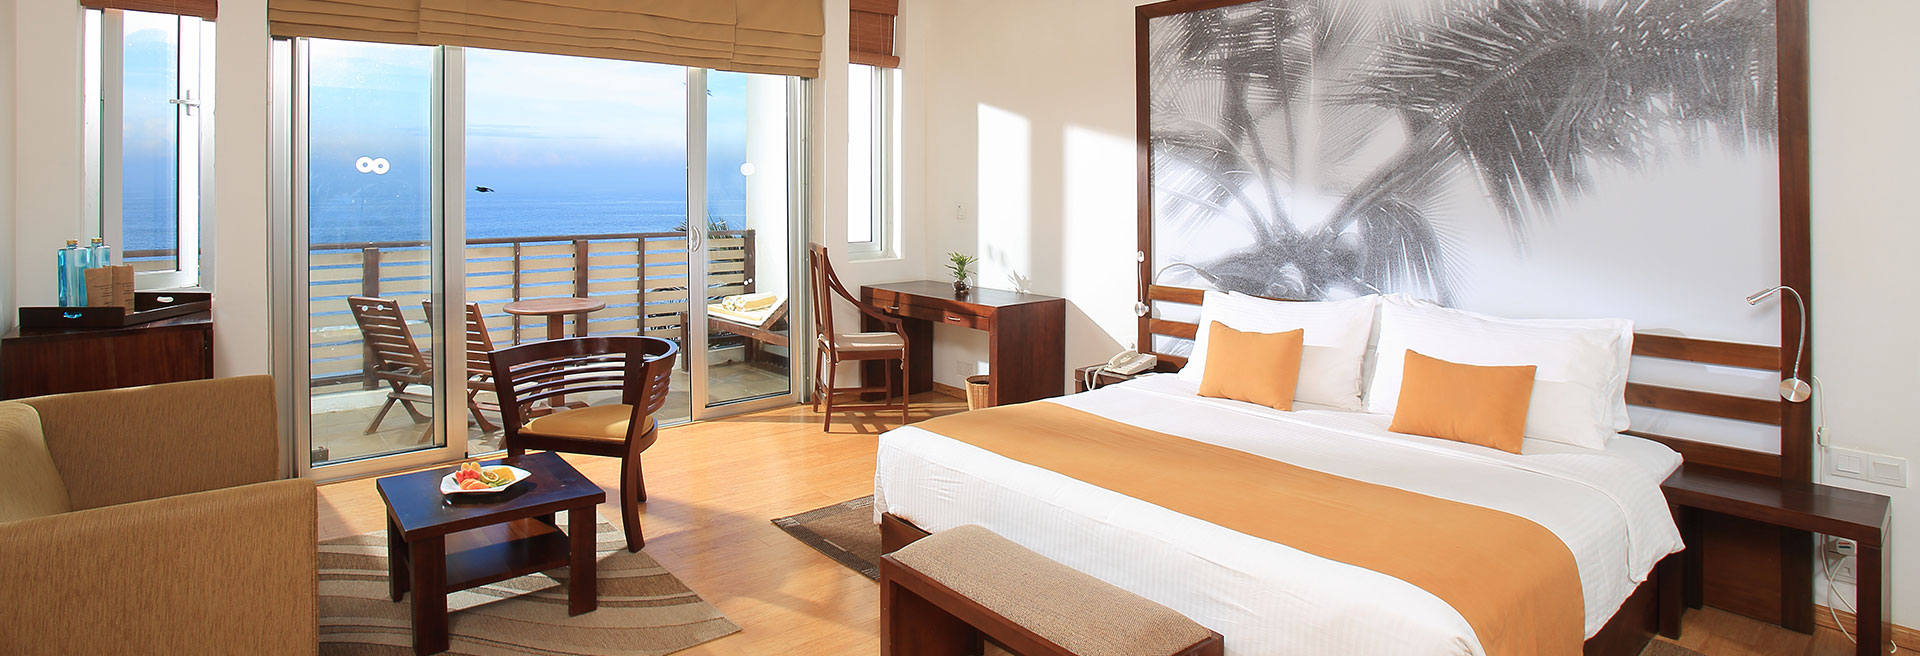 Luxury Double Bedroom With Beachside View